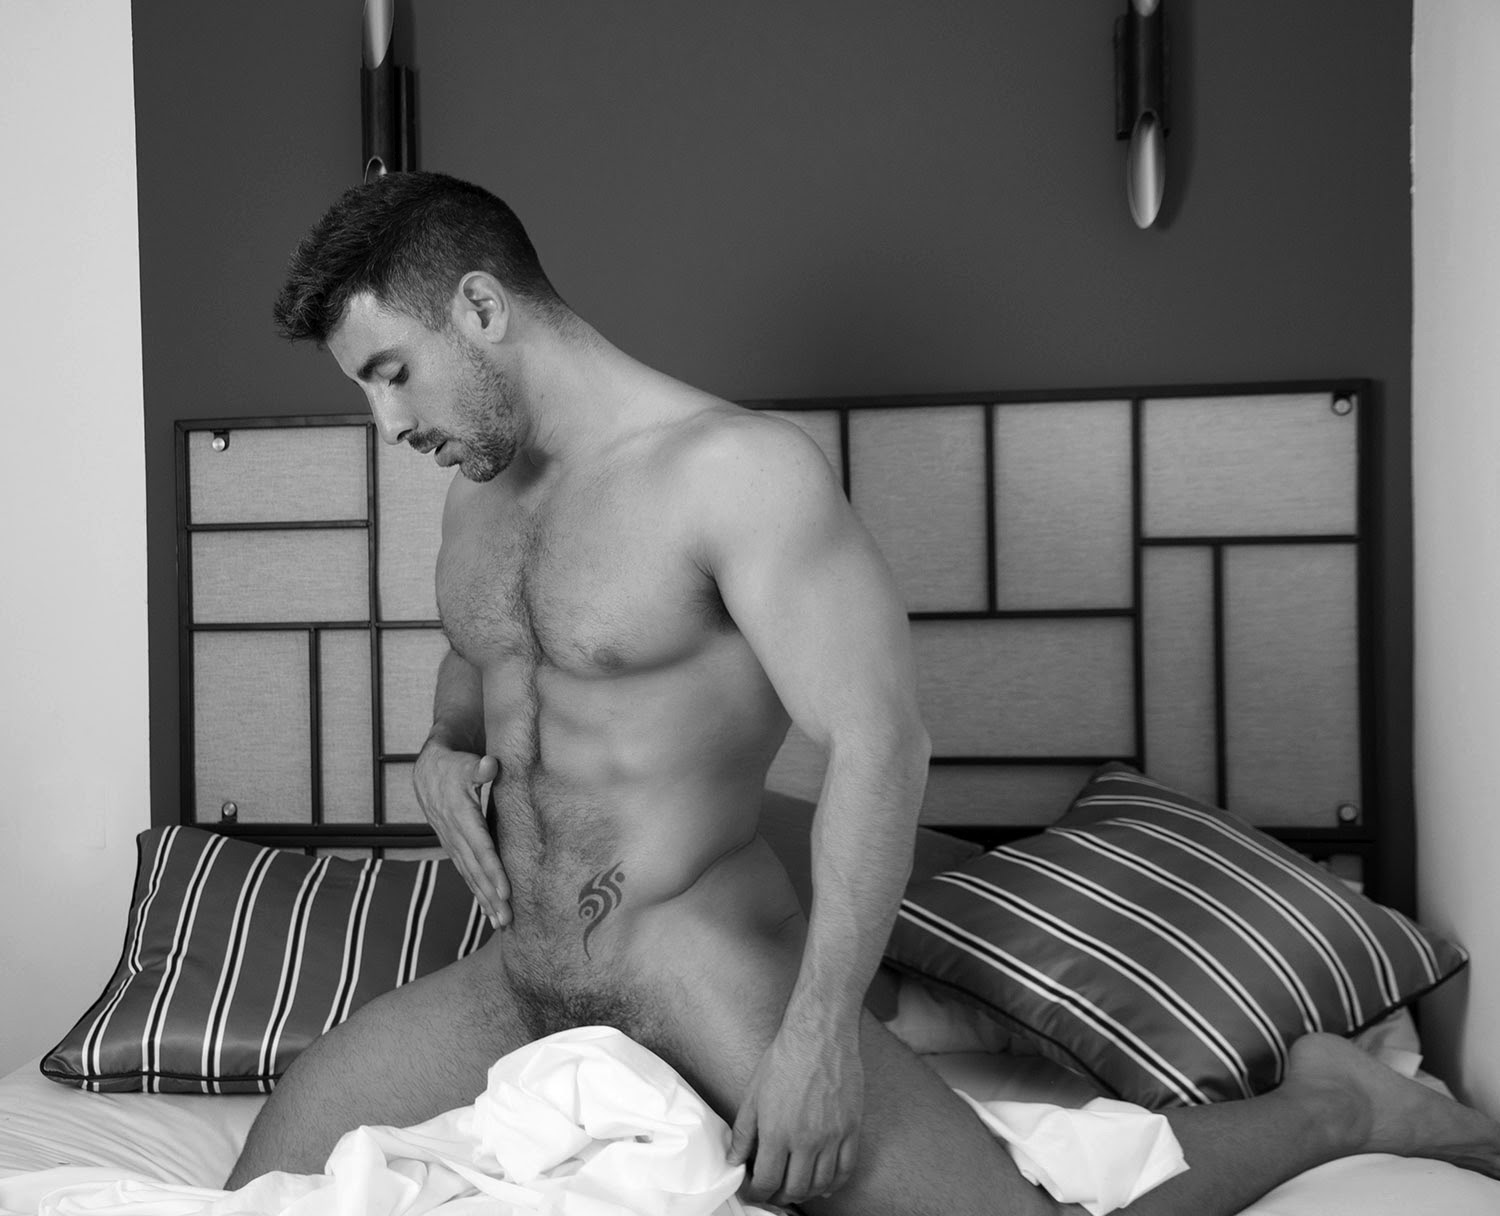 CarloS (II), by INCH PHOTOGRAPHY ft Carlos Fiore (NSFW).